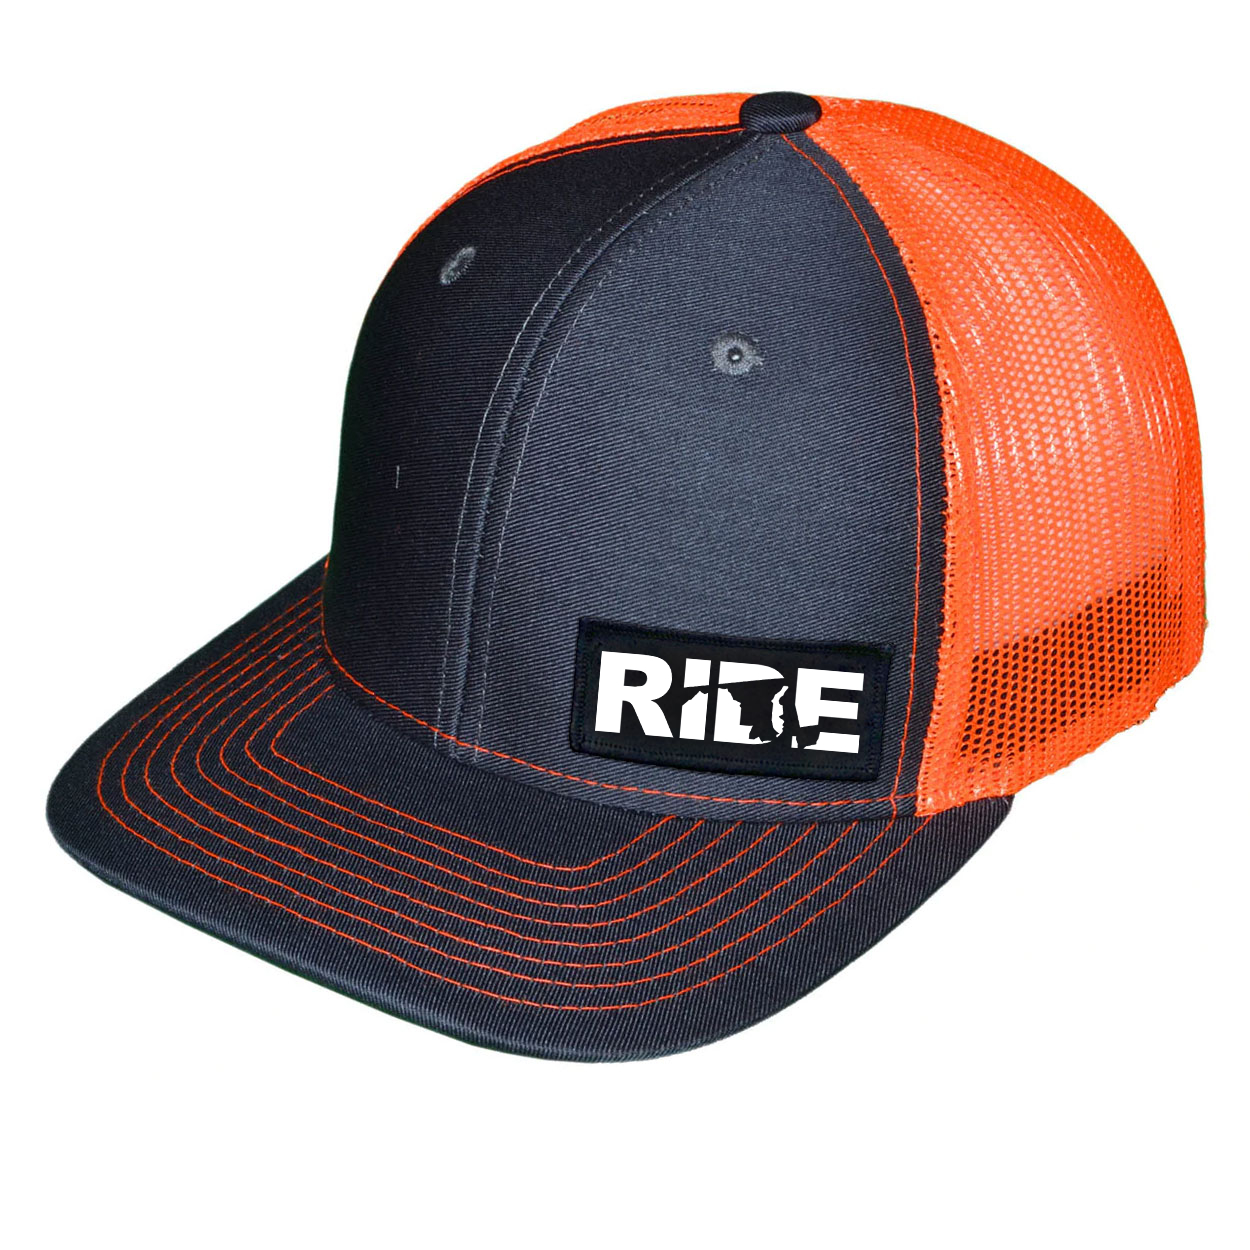 Ride Maryland Night Out Woven Patch Snapback Trucker Hat Dark Gray/Orange (White Logo)